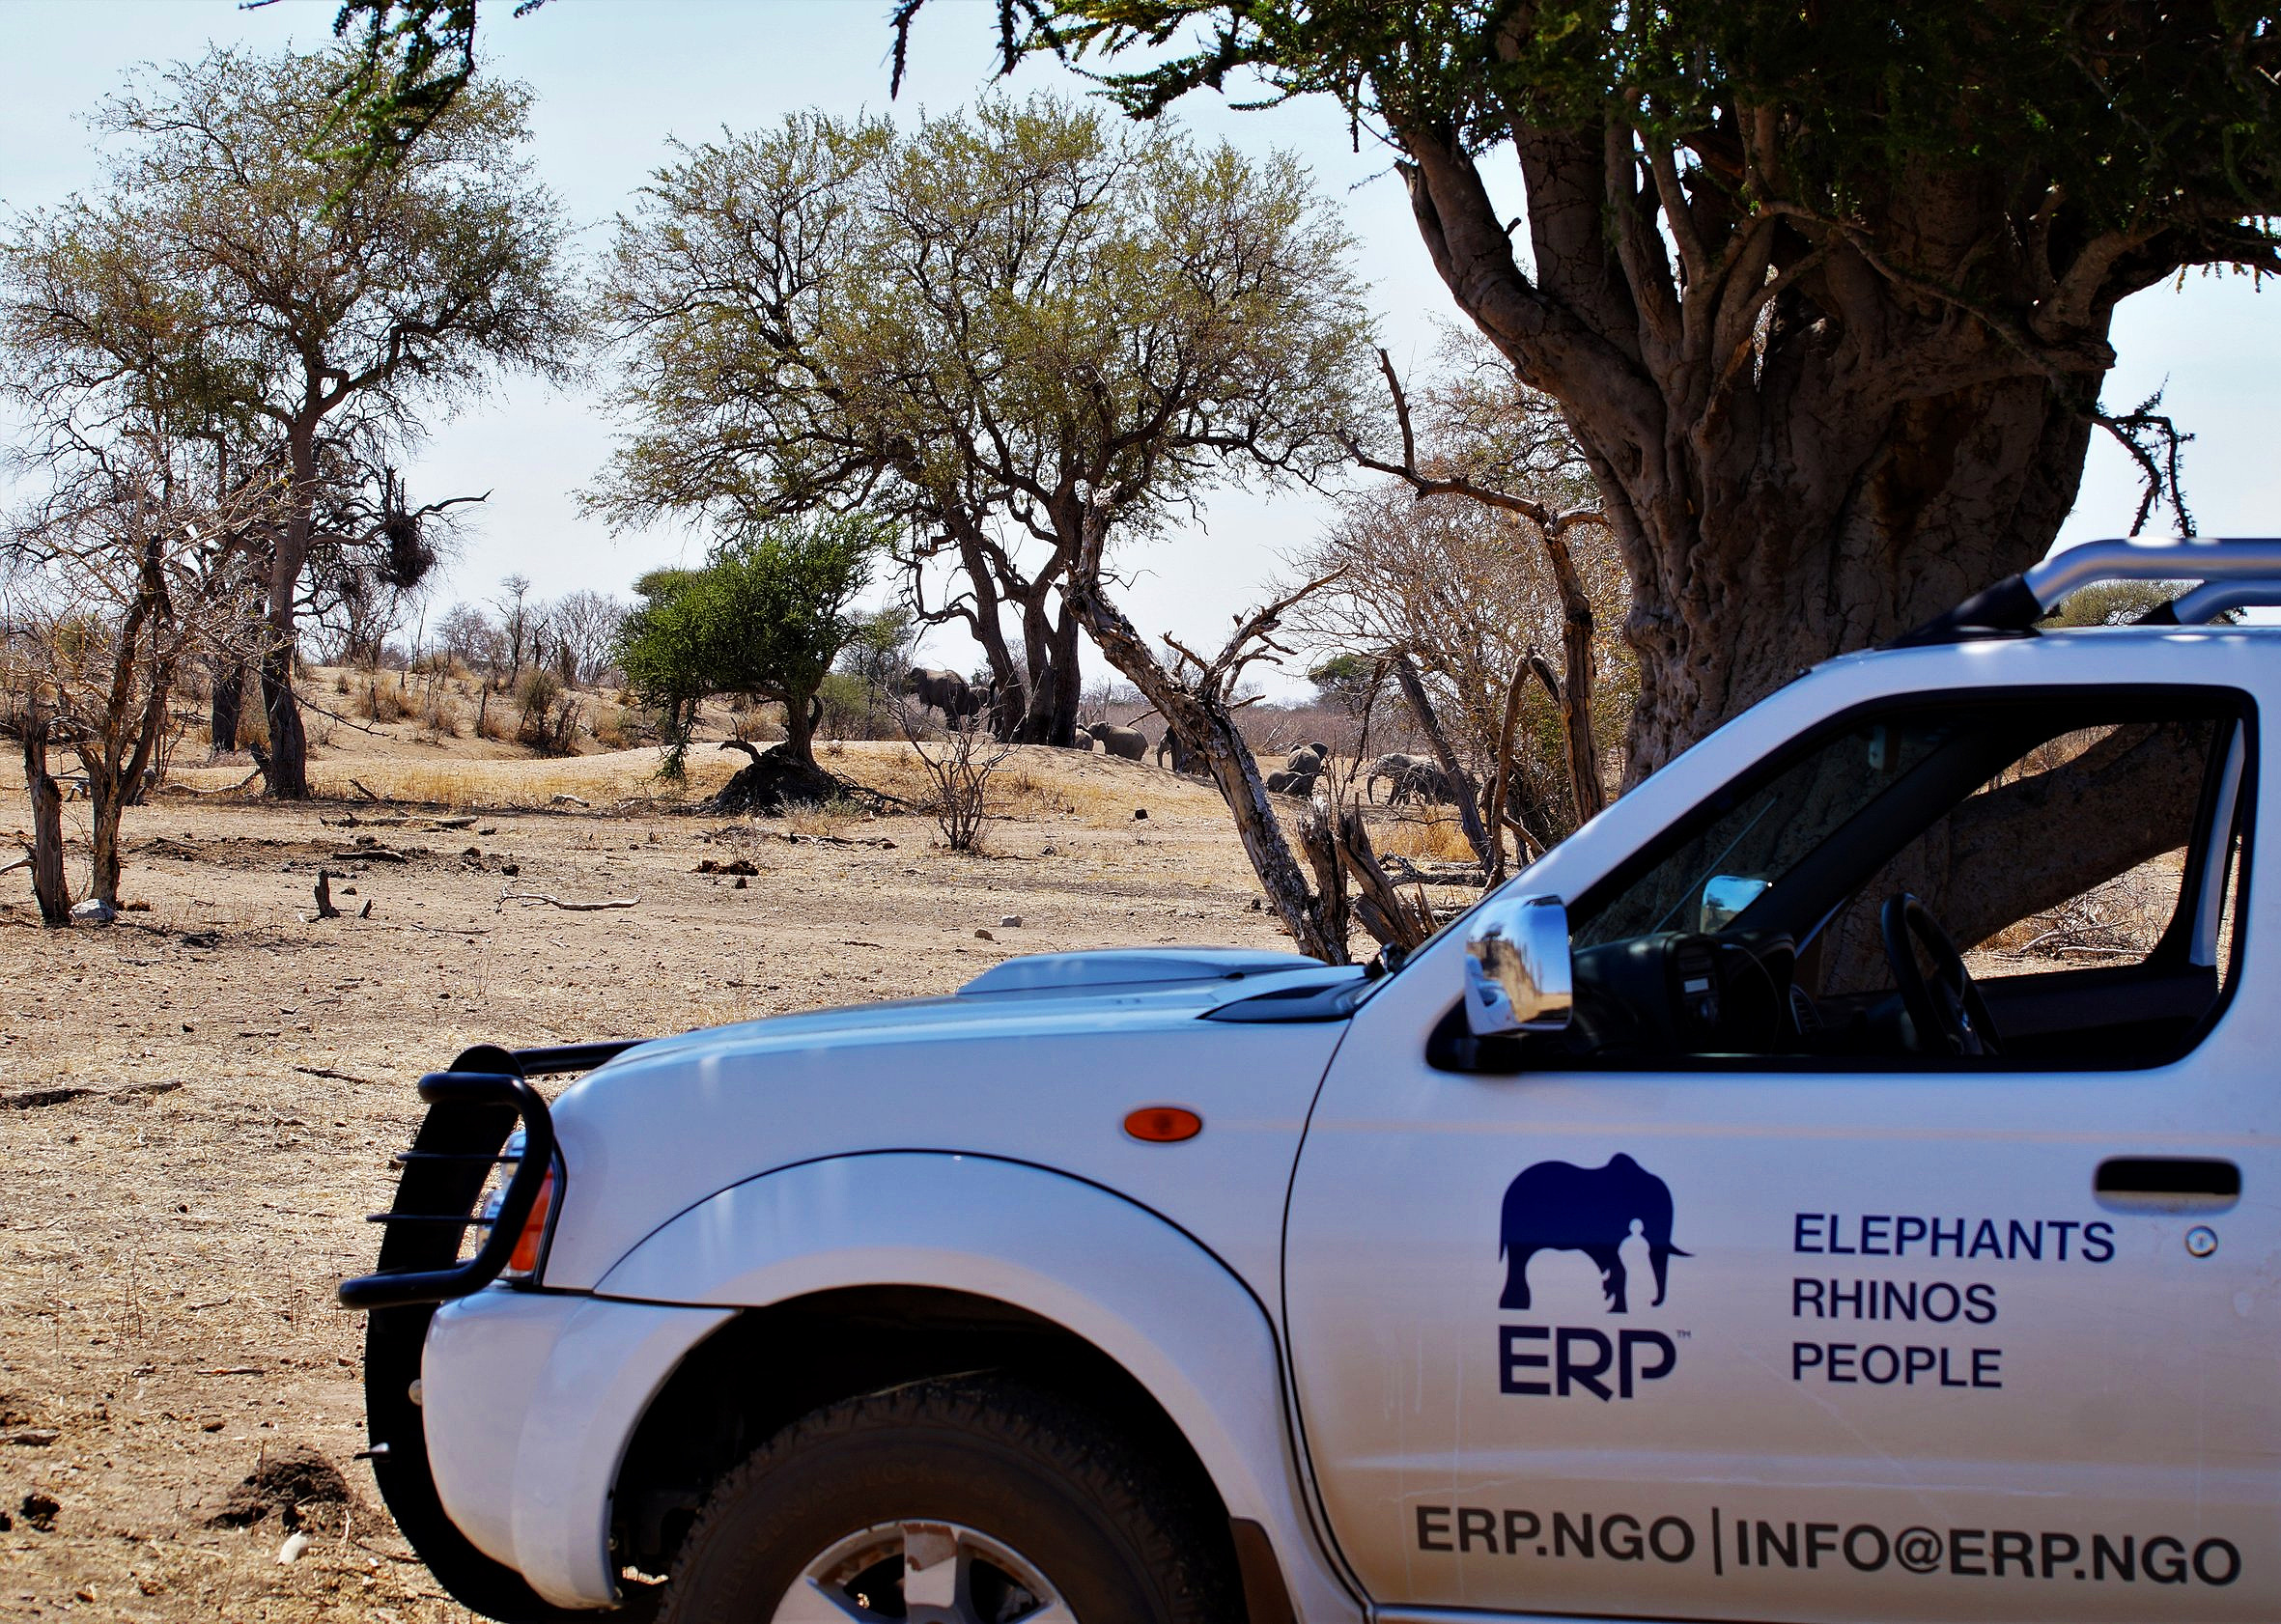 The ERP Team on a site-visit, observing the reserve's population of elephants. Photo: Ida Hansen